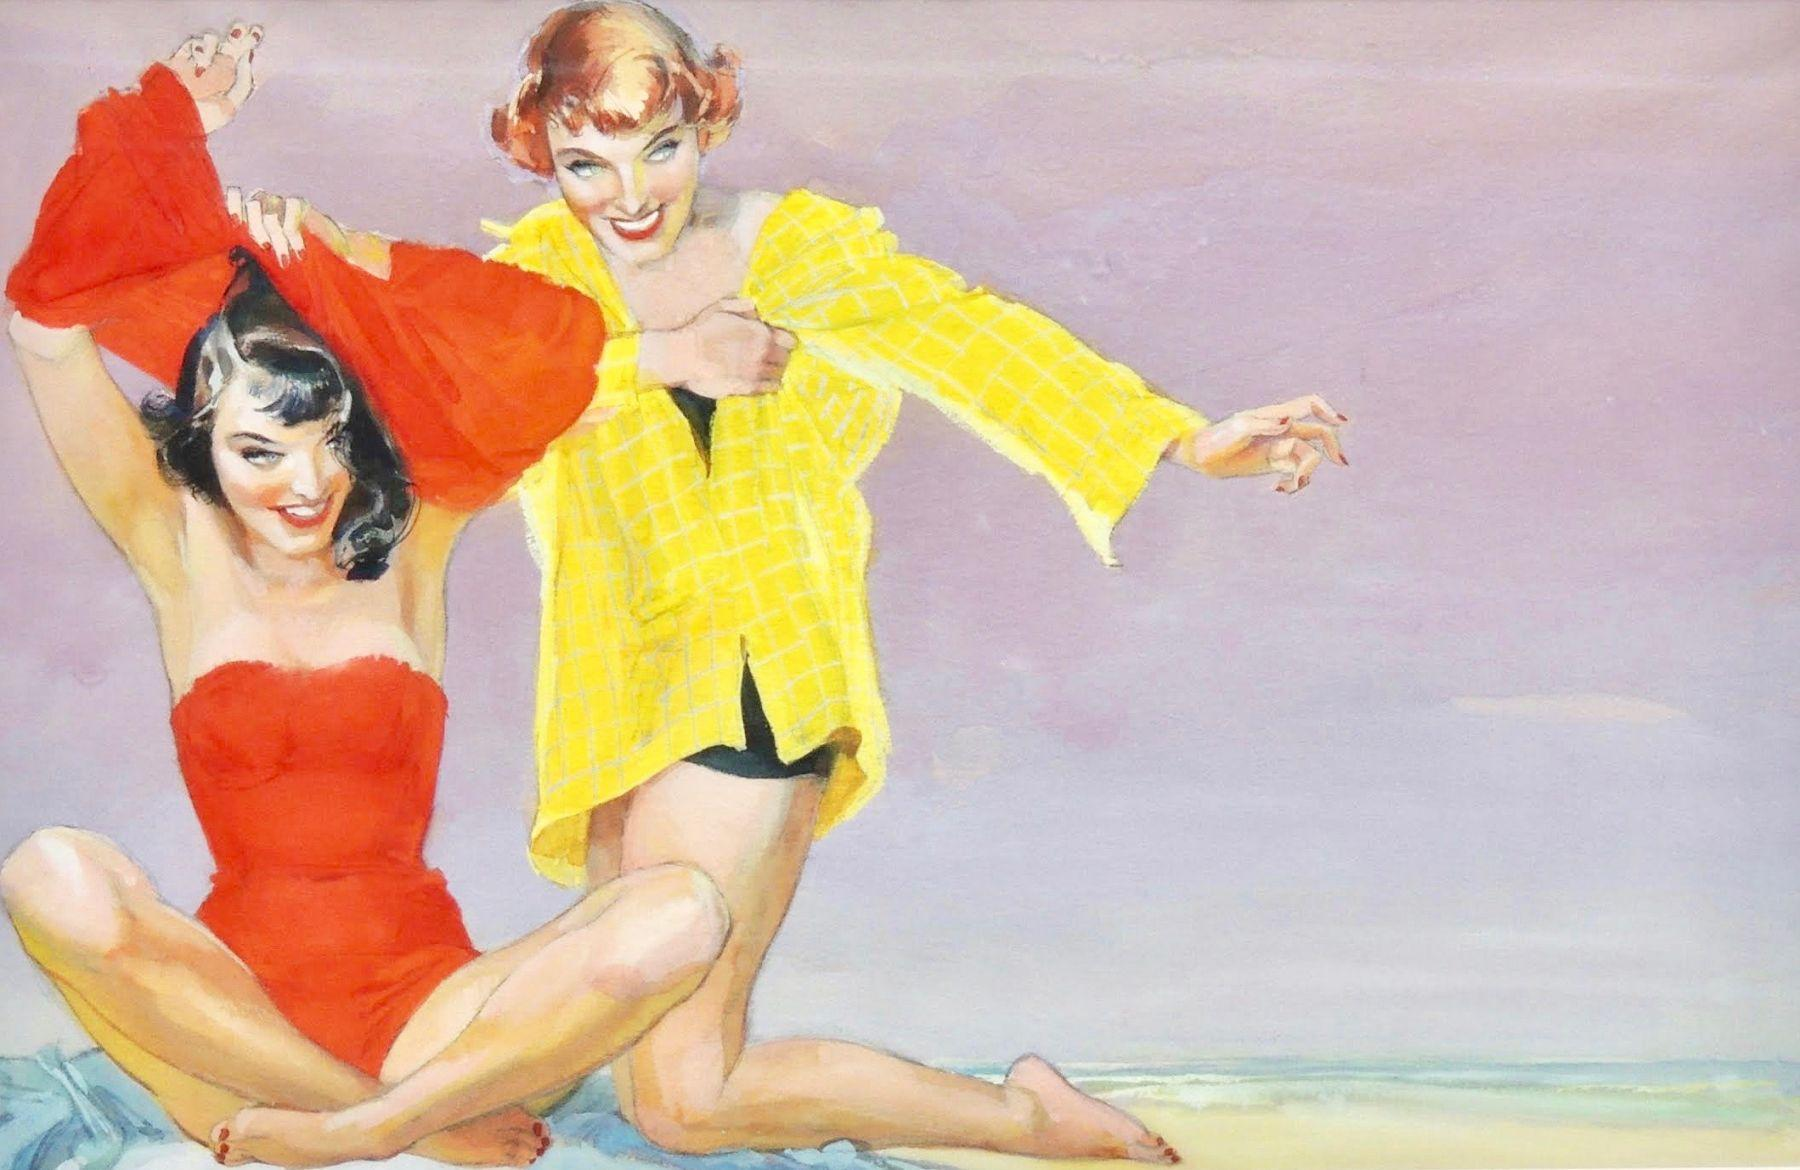 Two Bathing Suited Women at the Beach